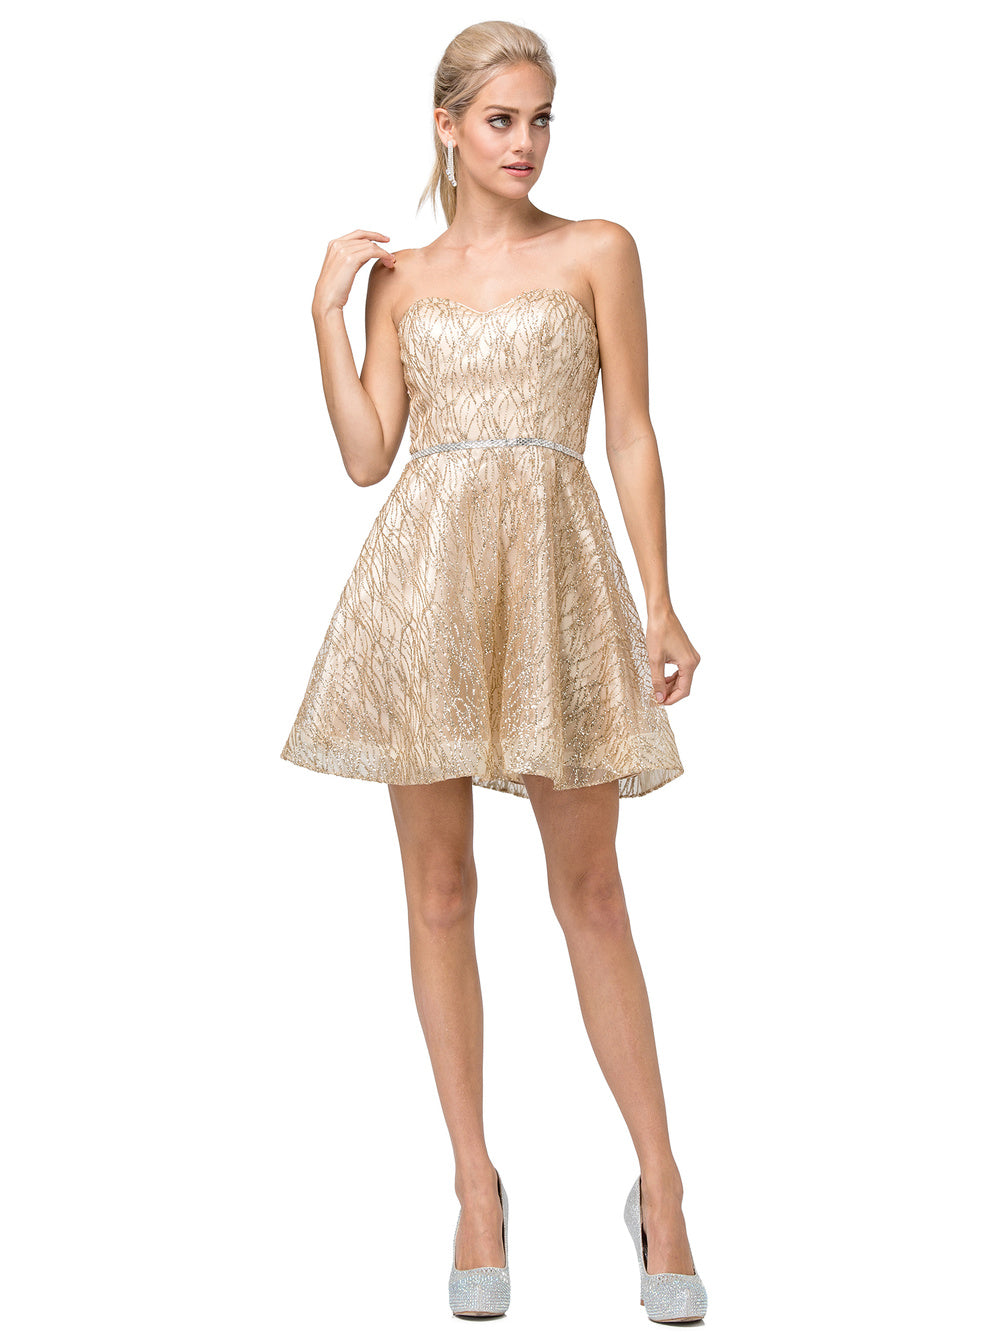 DQ 3136 - Strapless Sparkling Glitter Homecoming Dress with Rhinestone Belt & Corset Back